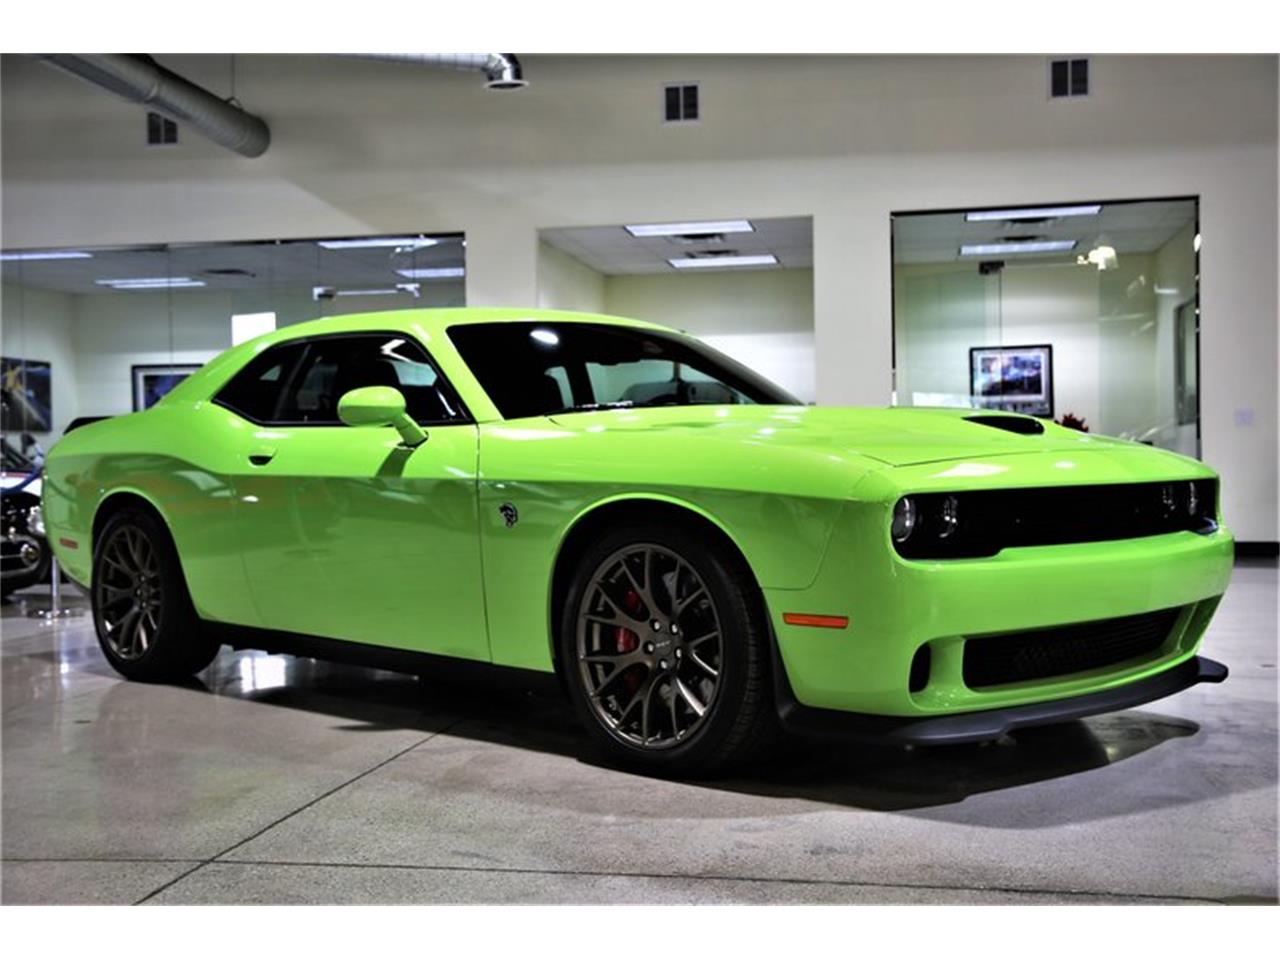 for sale 2015 dodge challenger in chatsworth, california cars - chatsworth, ca at geebo